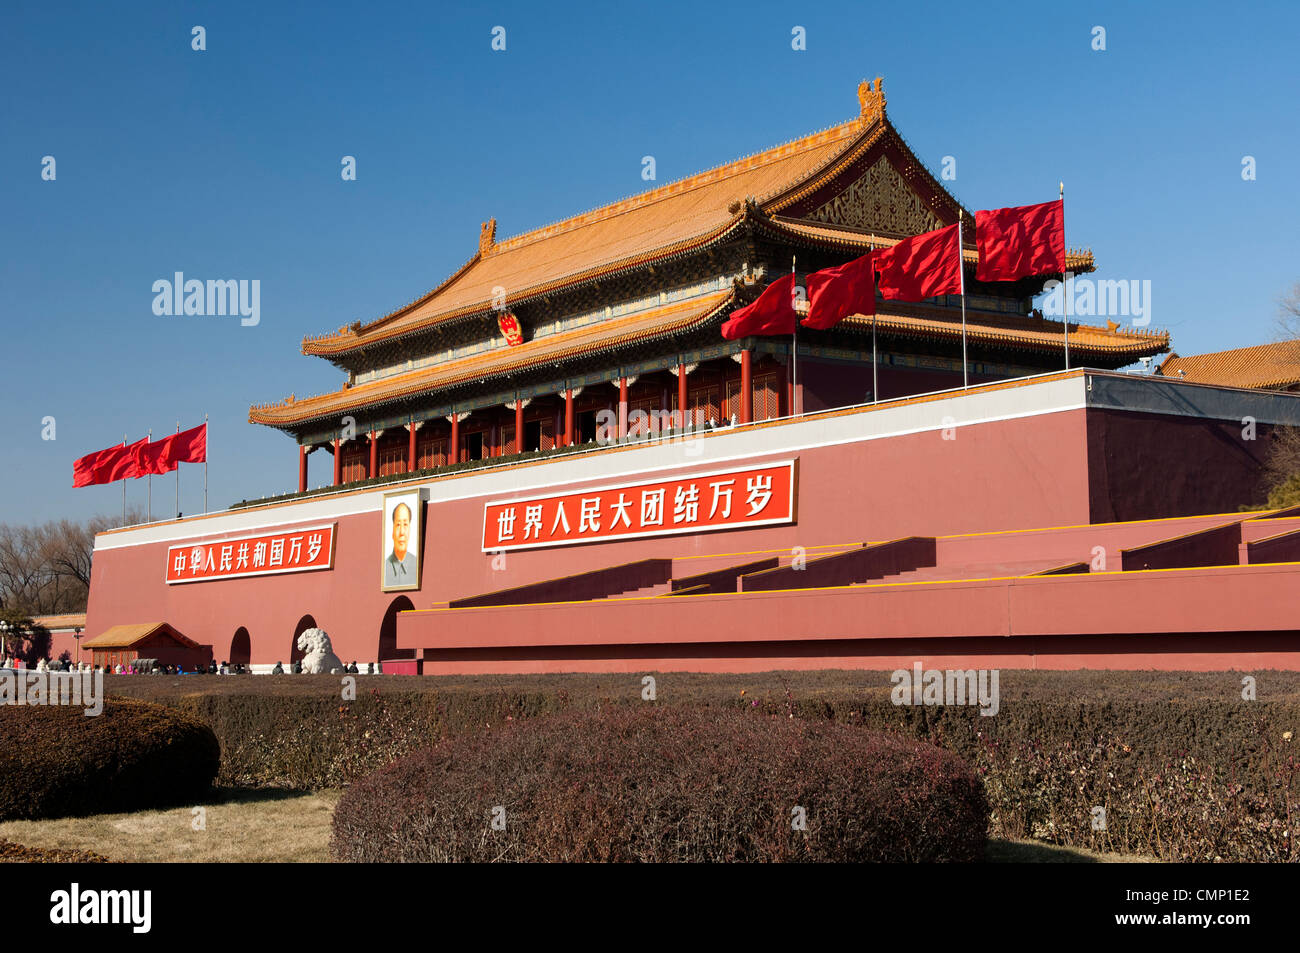 Tiananmen Gate or Gate of Heavenly Peace, entrance to the Forbidden City at Tiananmen square, Beijing, China - Stock Image